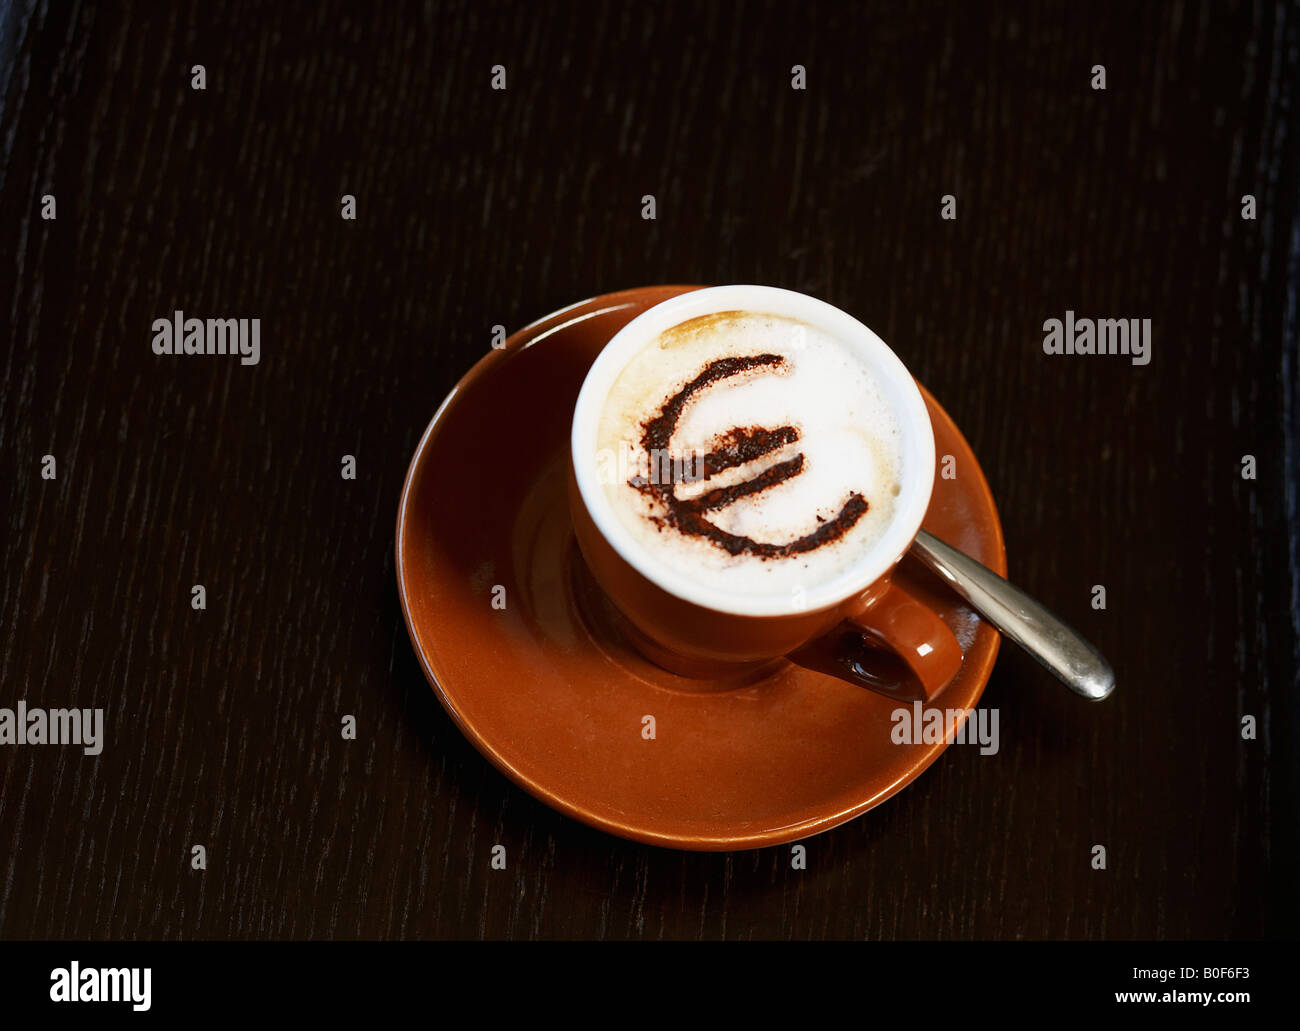 Cappuccino with 'euro' motif in cocoa - Stock Image